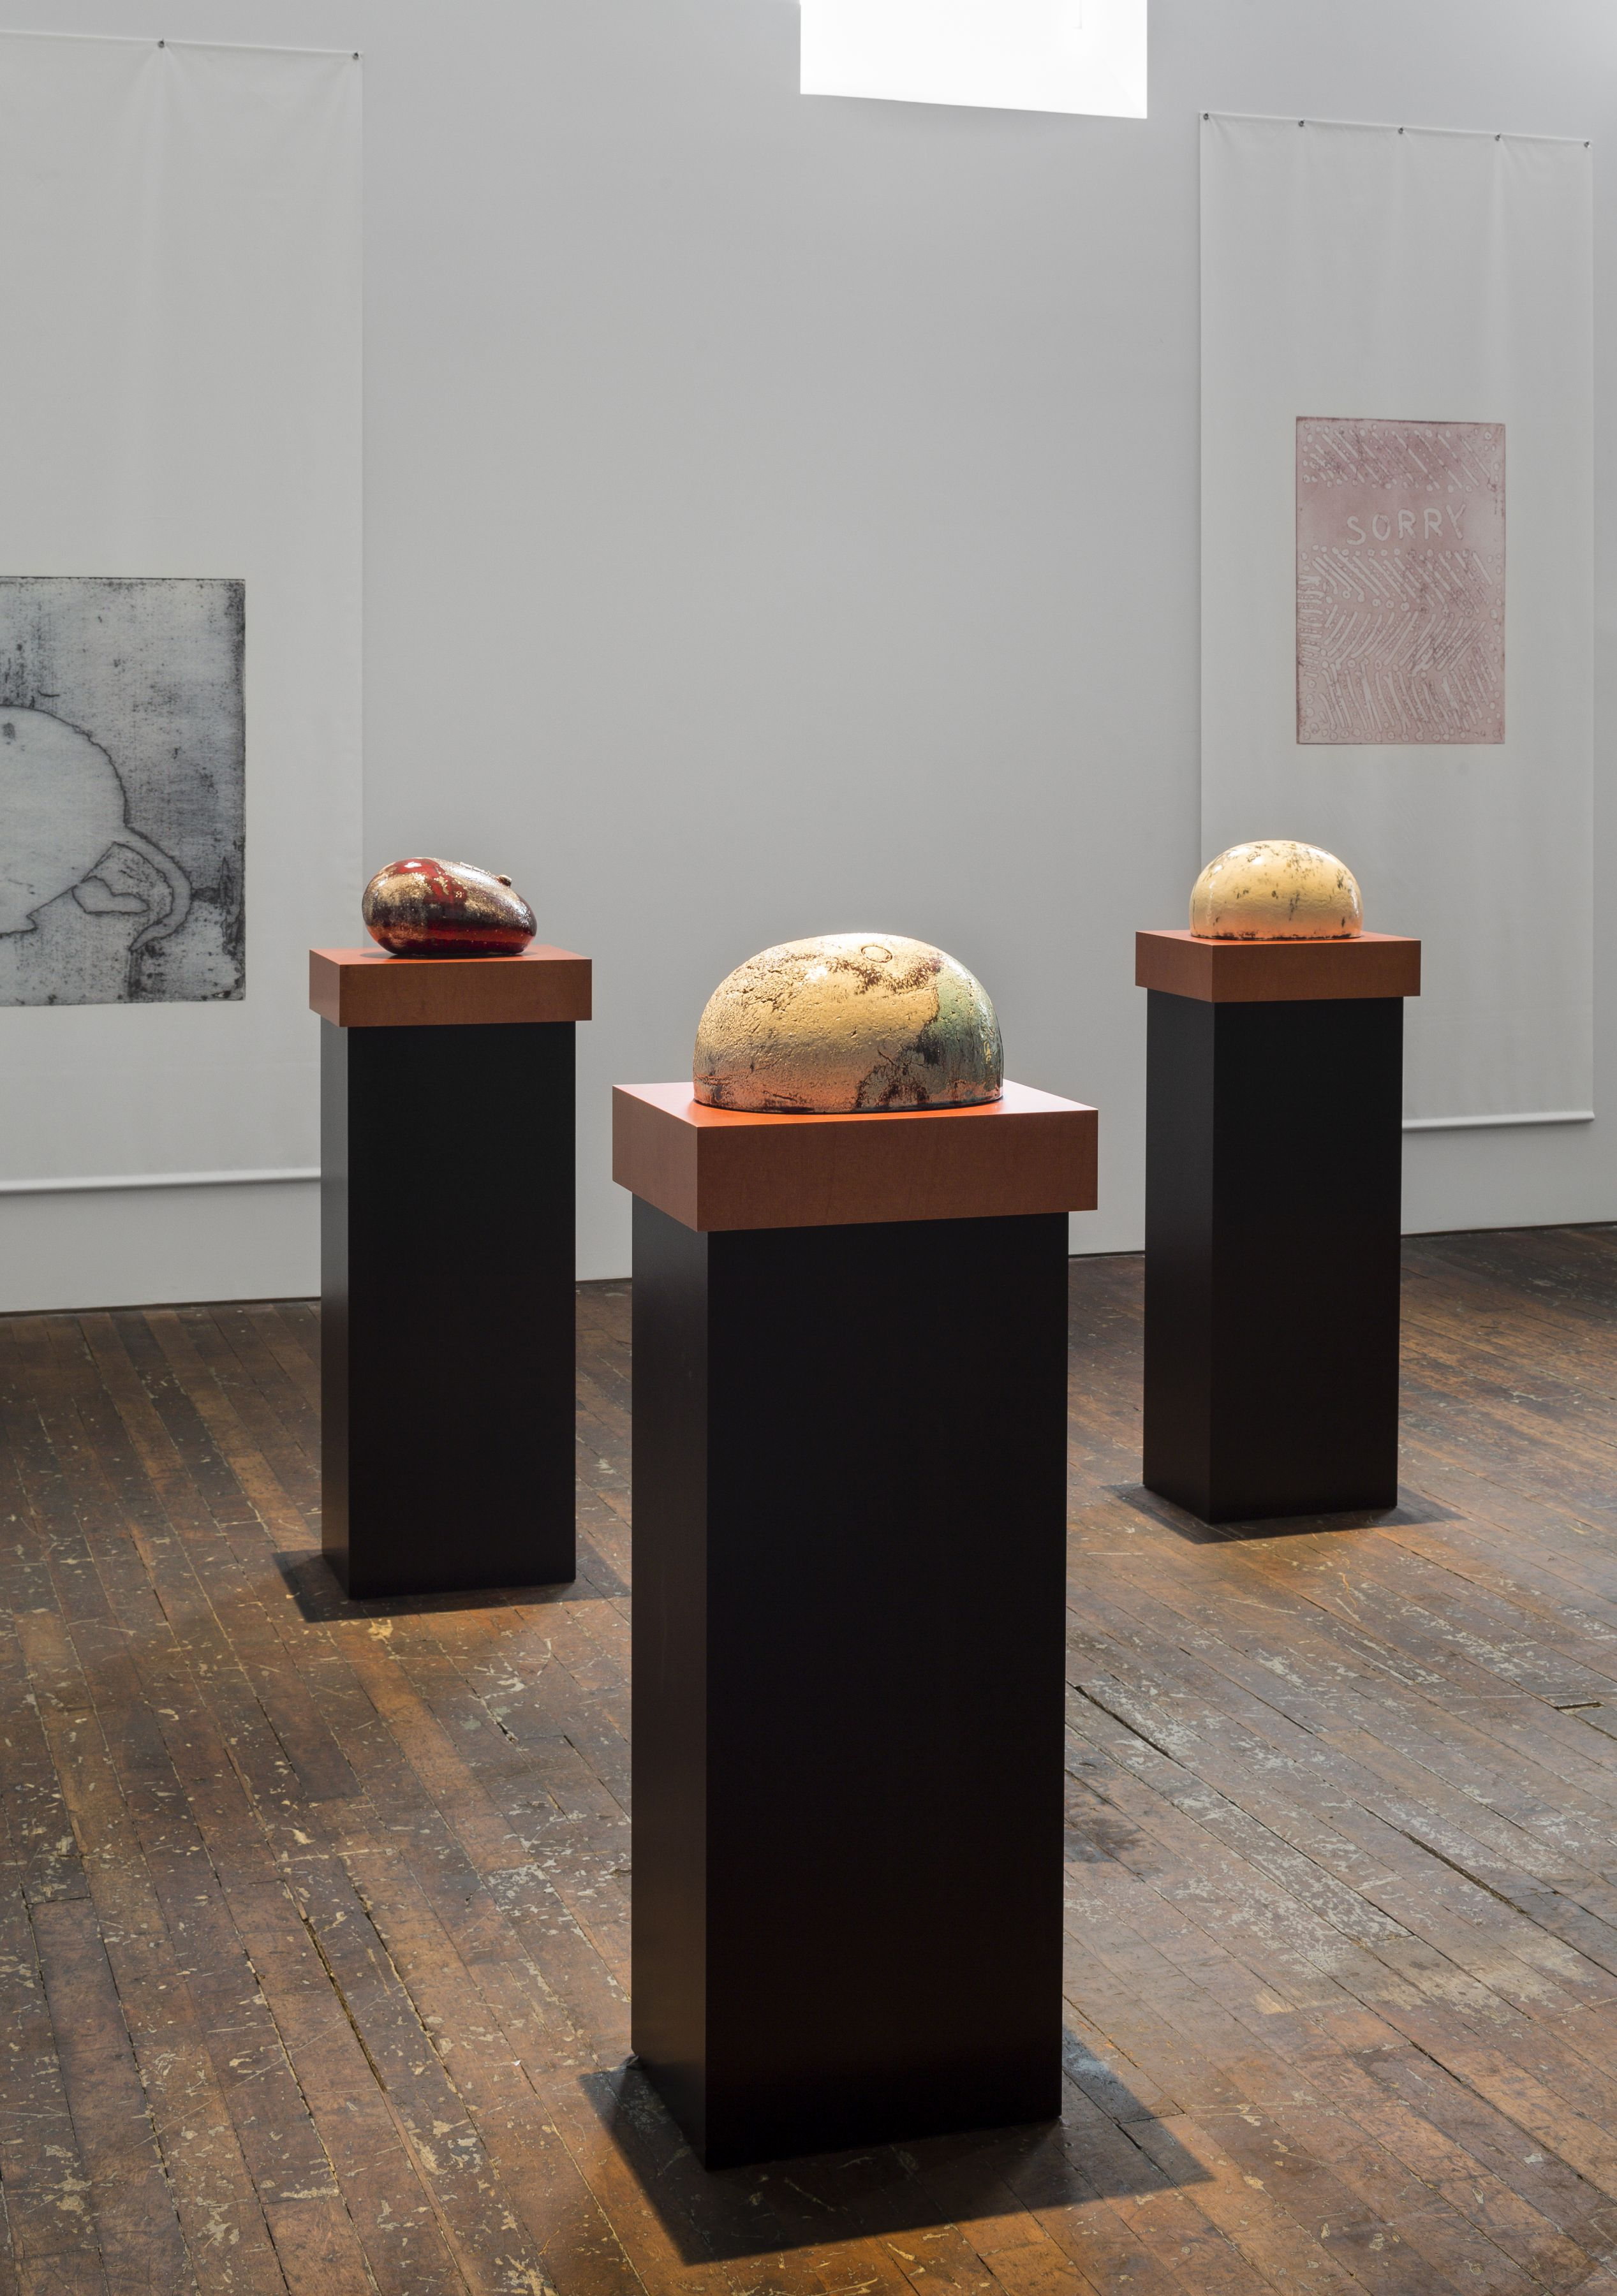 Thomas Schütte – installation view 21